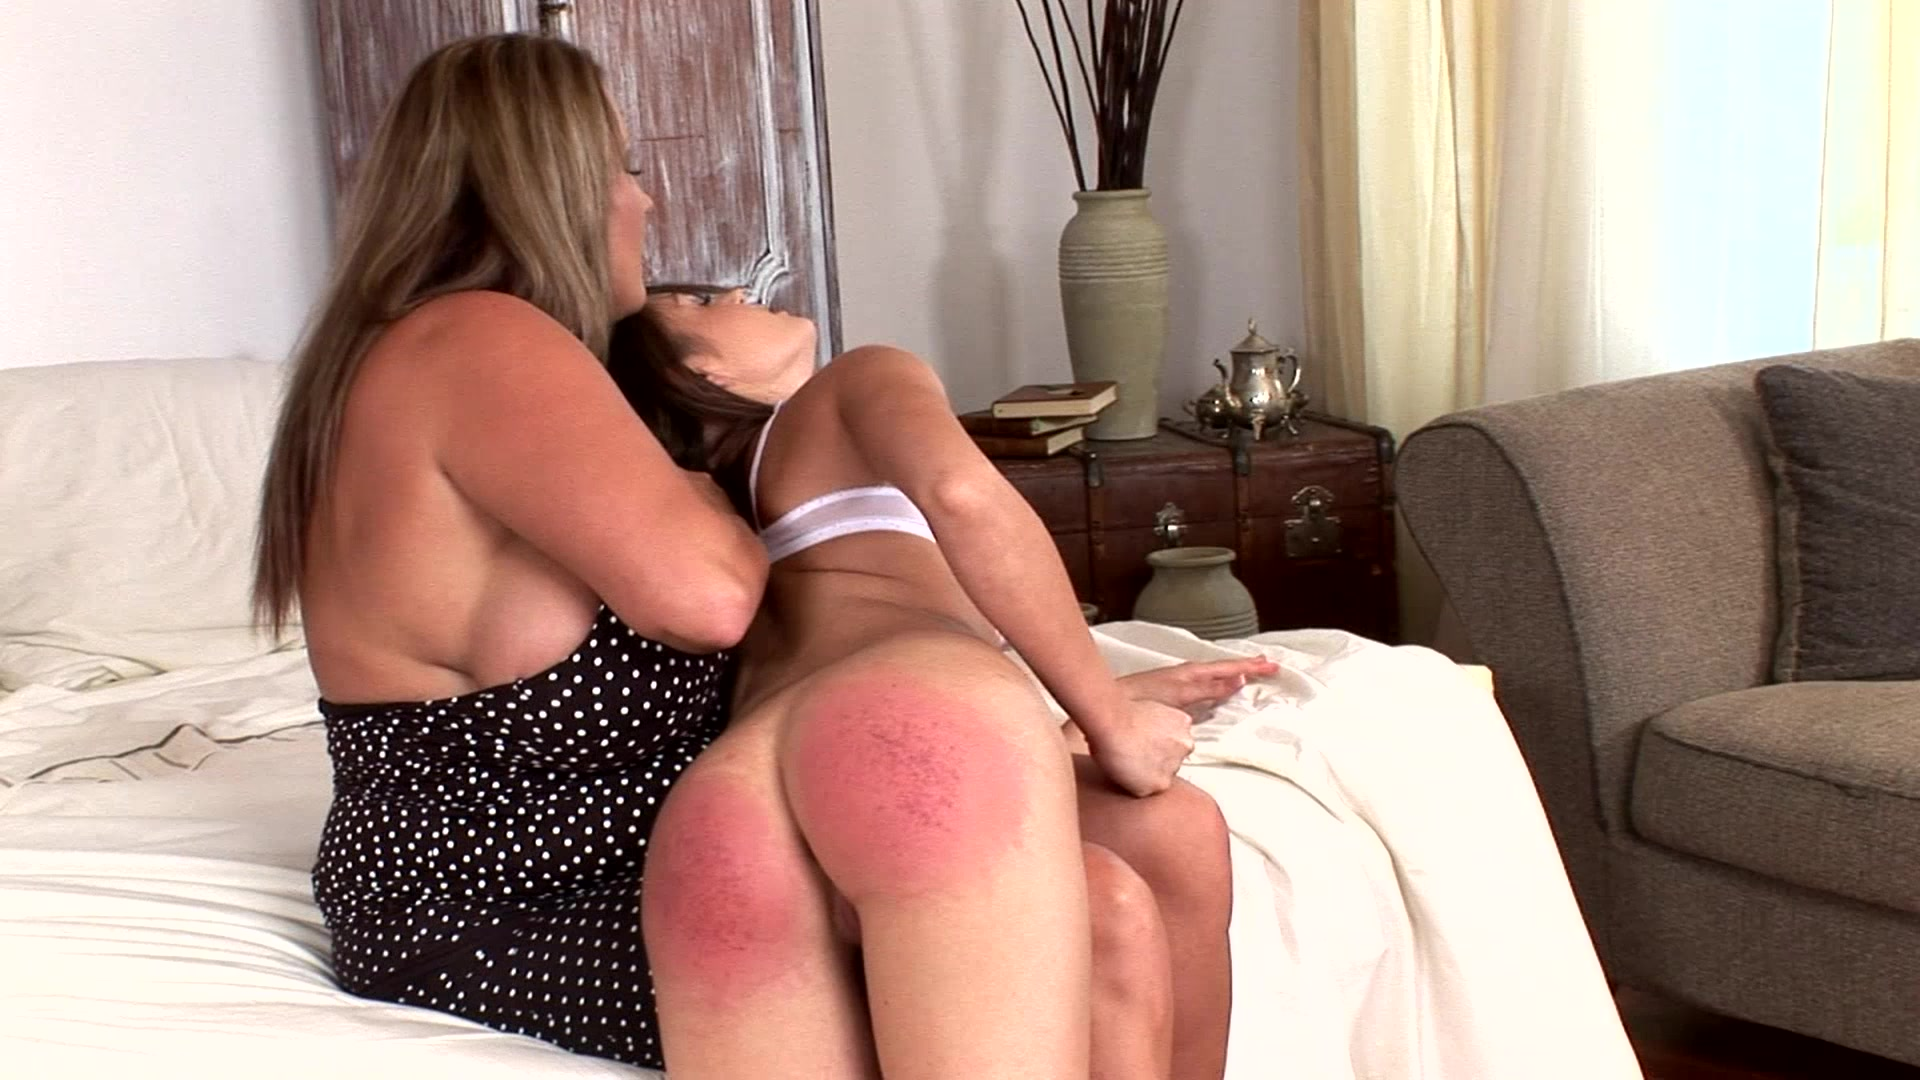 Porn trailers containing bondage and spanking